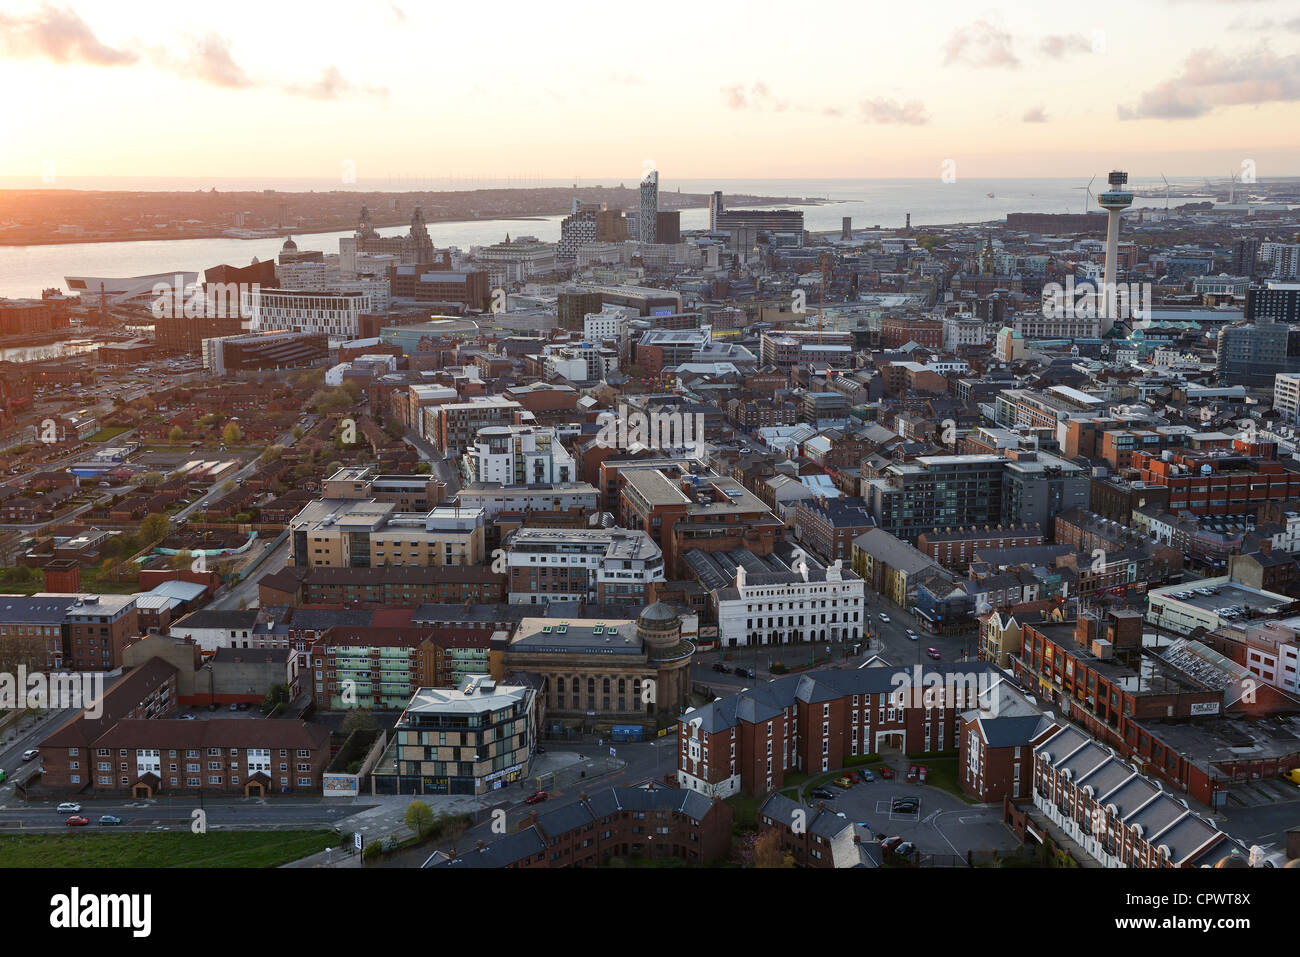 Liverpool city centre at dusk - Stock Image